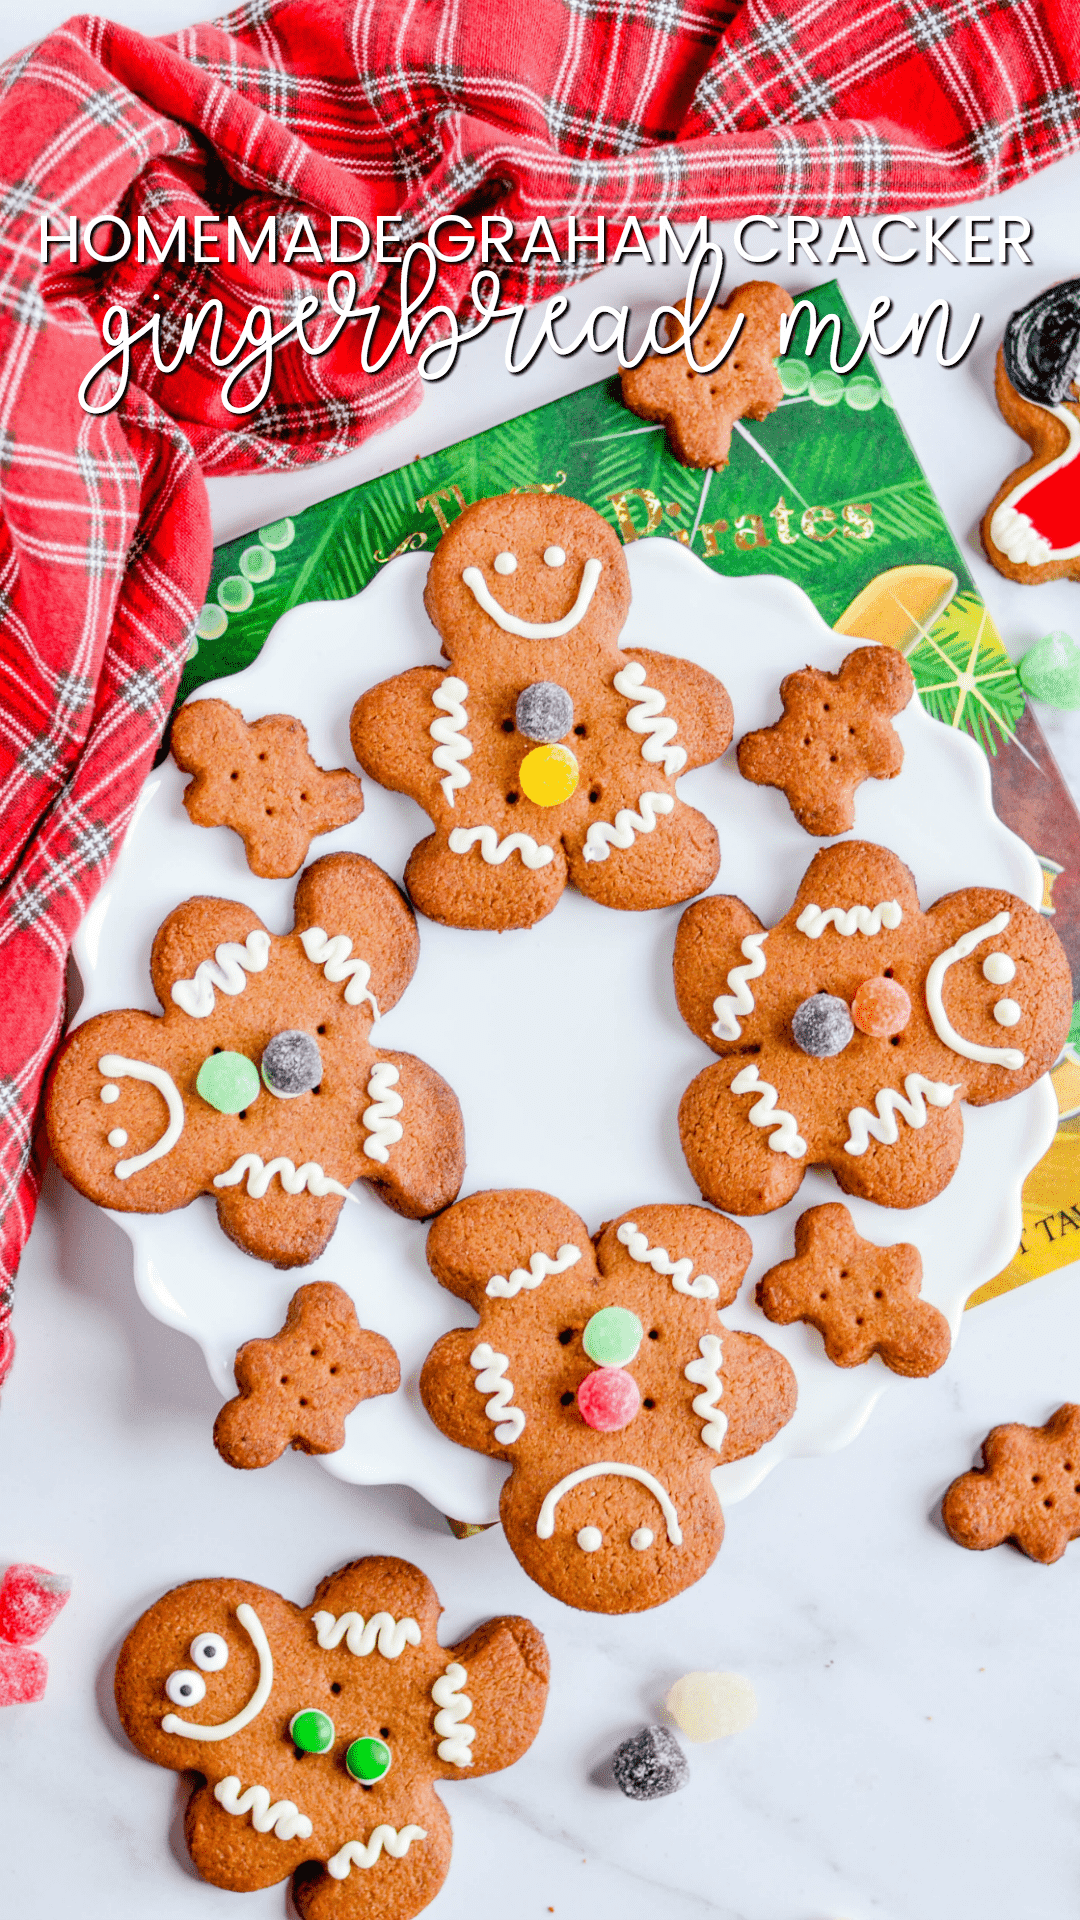 If you love the idea of adorable homemade Gingerbread Men Cookies (minus the gingerbread!), then these Homemade Graham Cracker Gingerbread Men Cookies are for you.